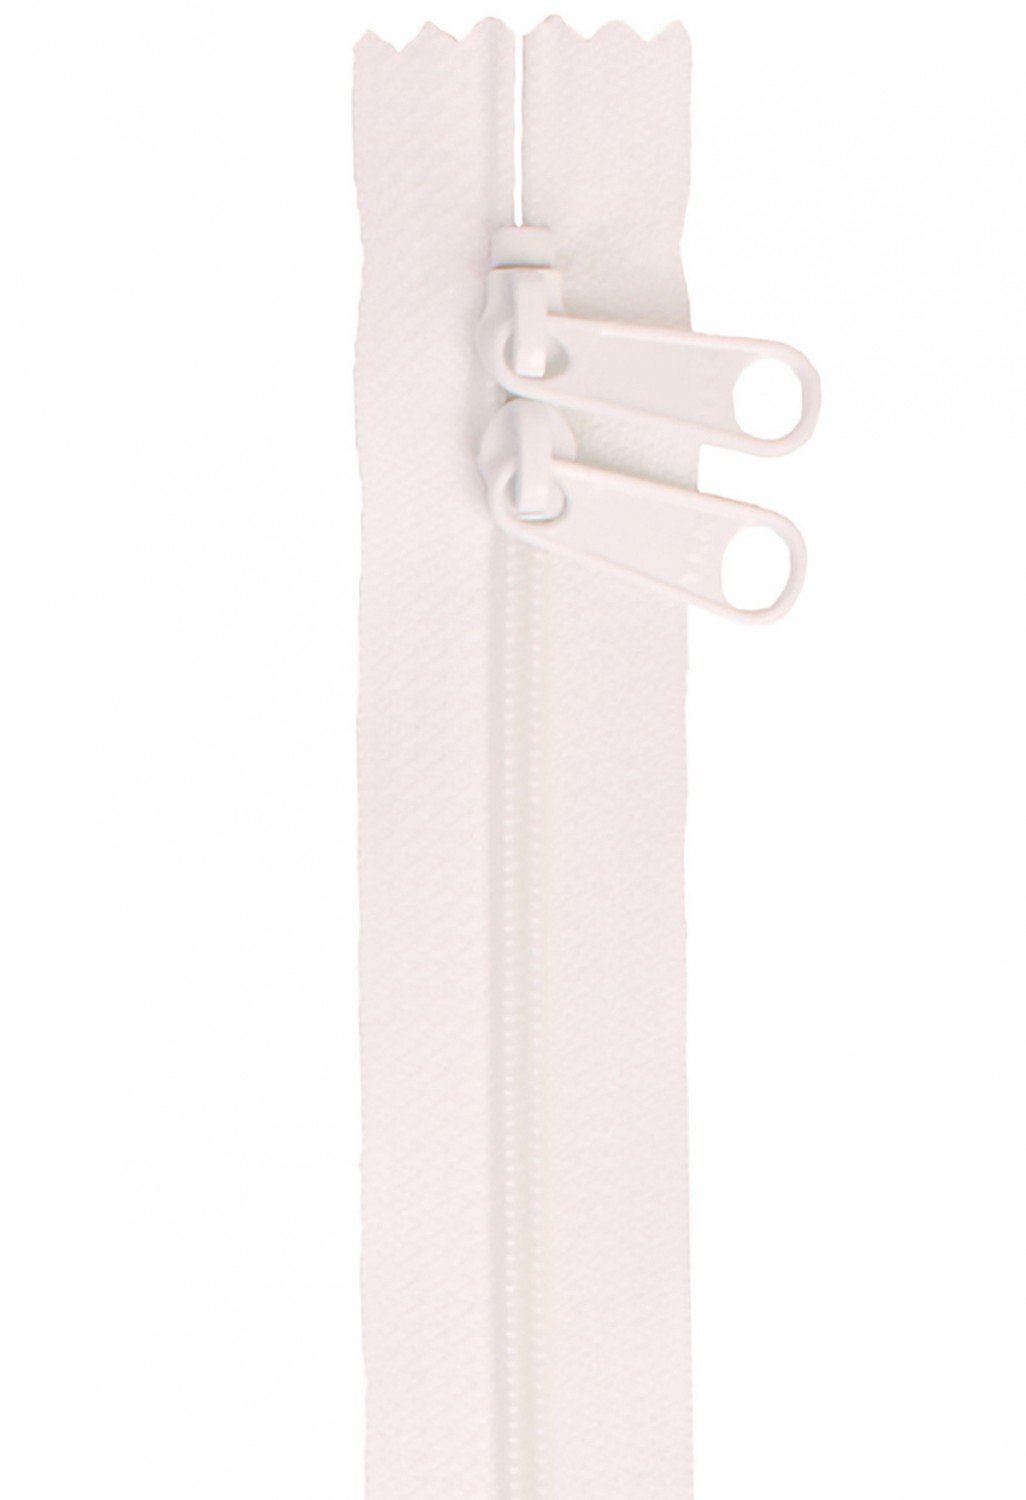 Annie's Handbag Zipper - White